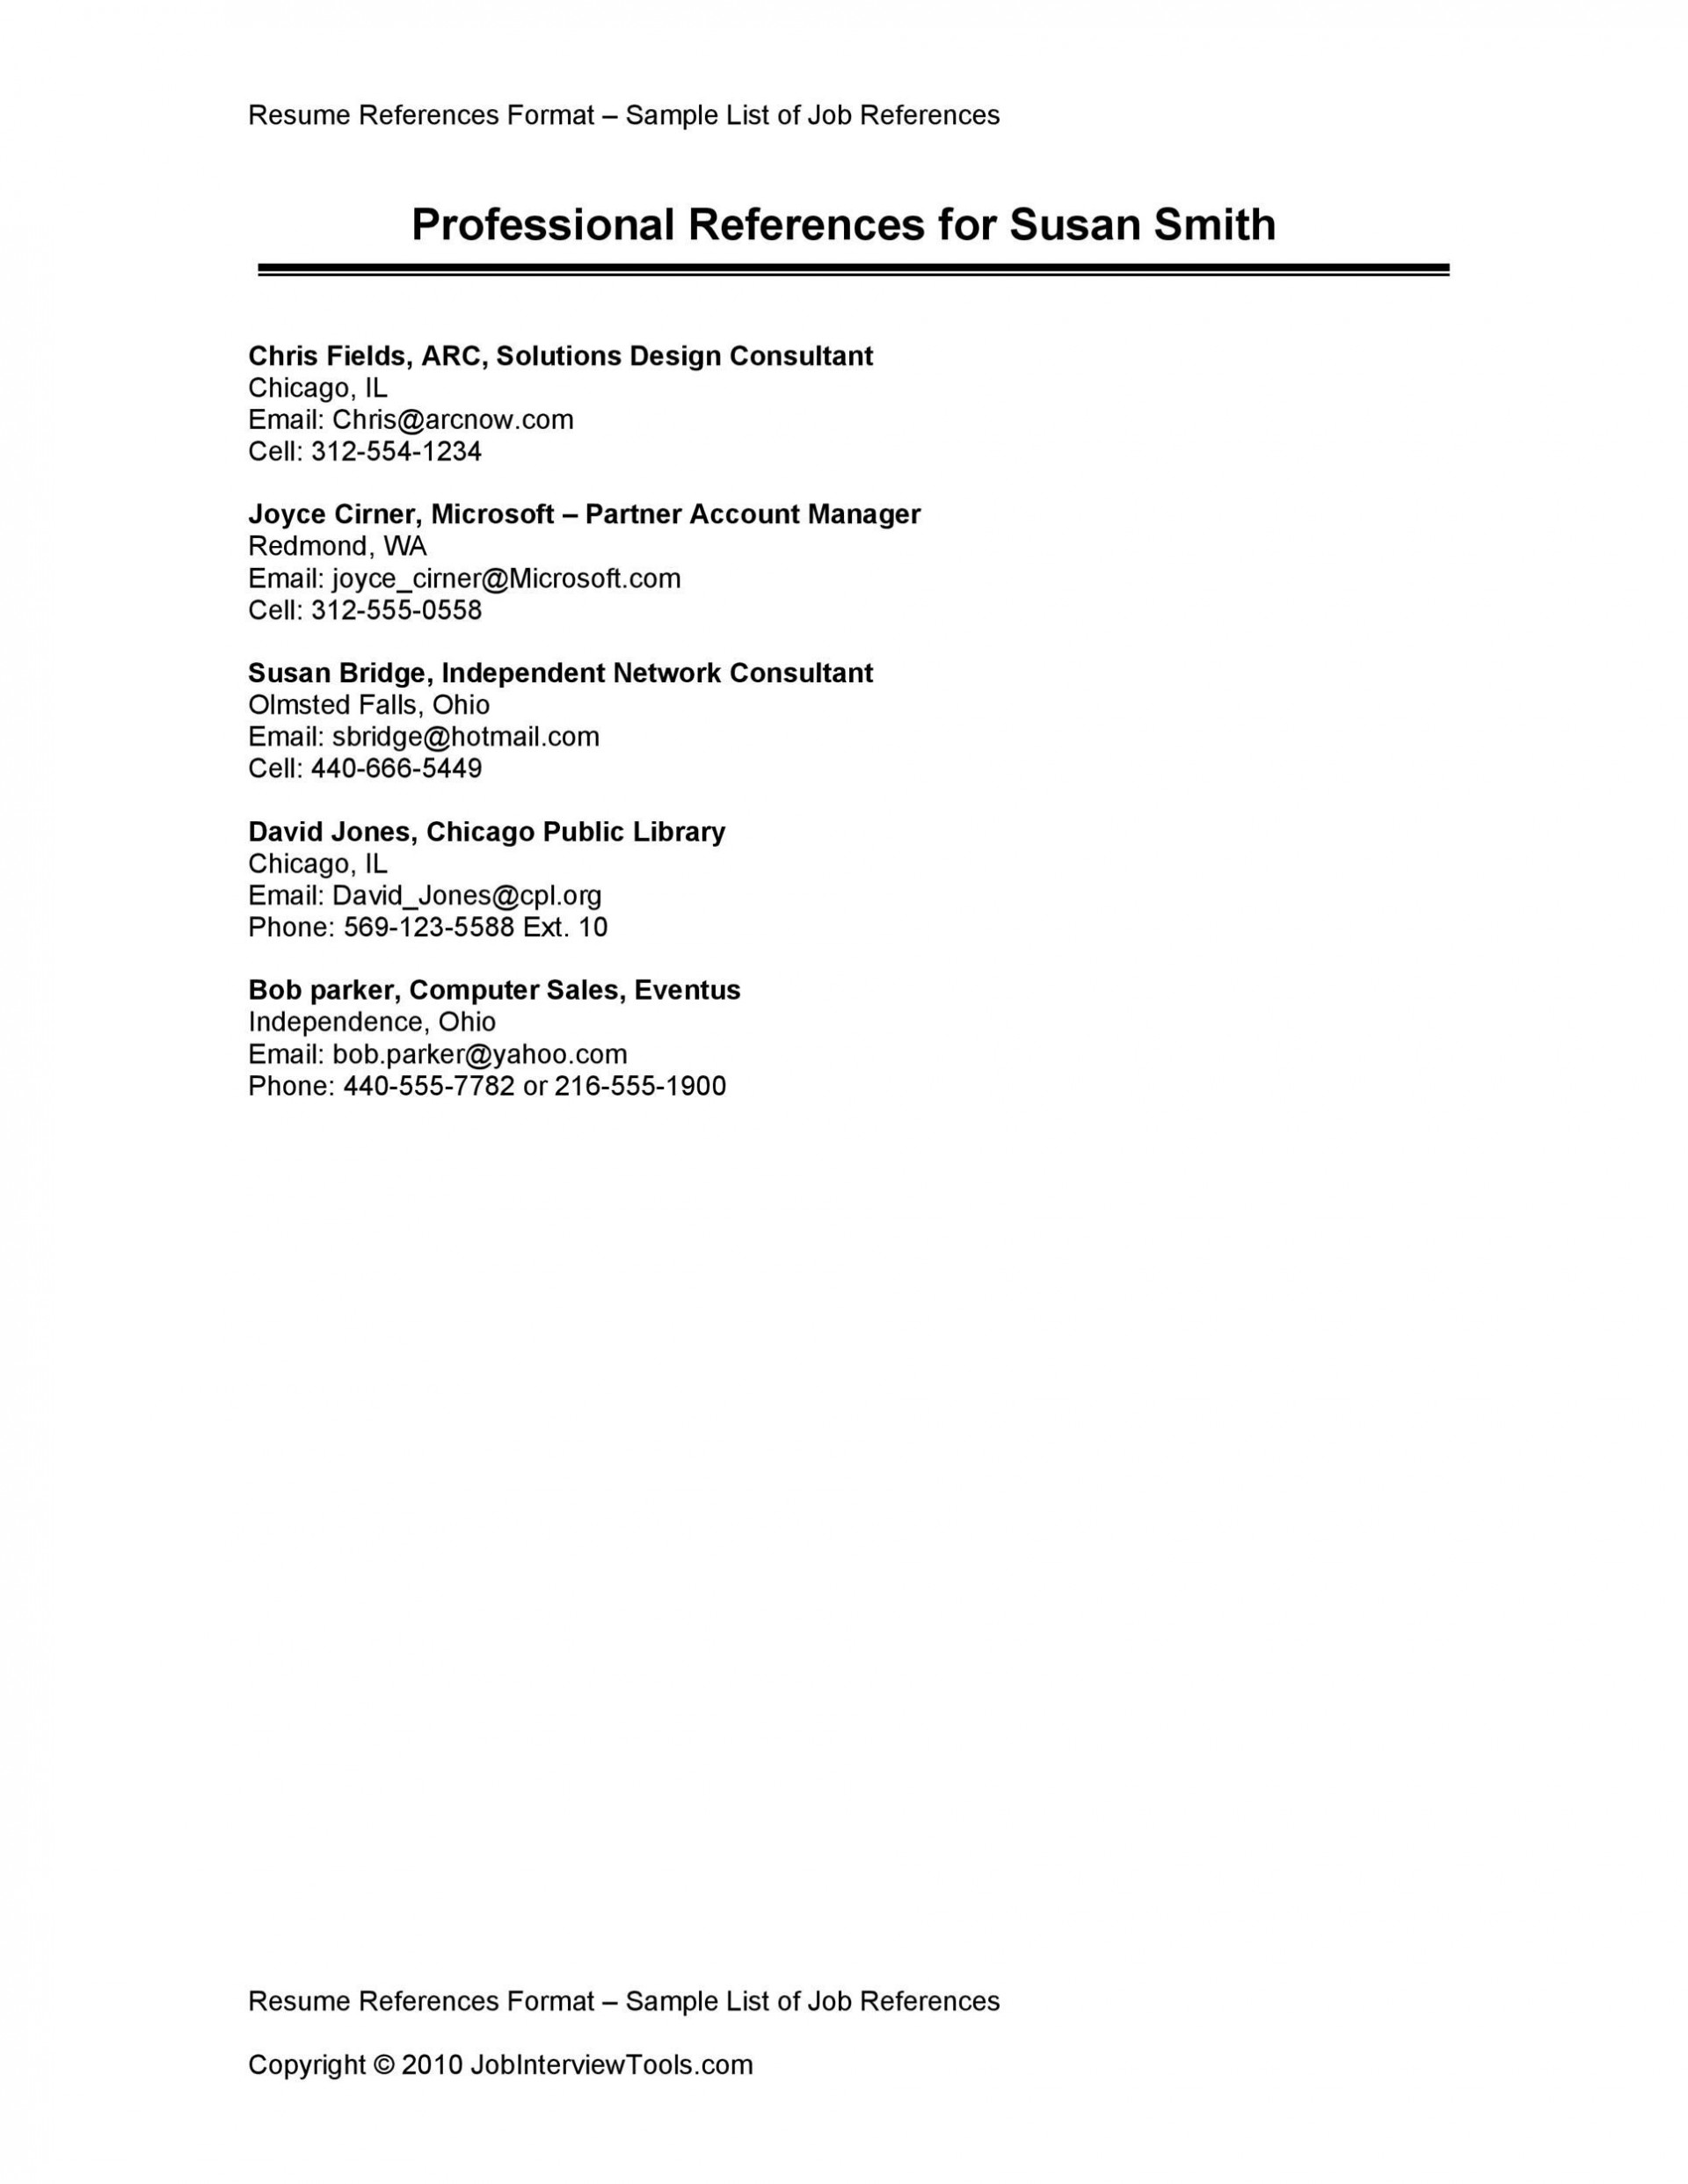 008 Phenomenal List Of Reference Template Inspiration  Employment Format Professional Free1920